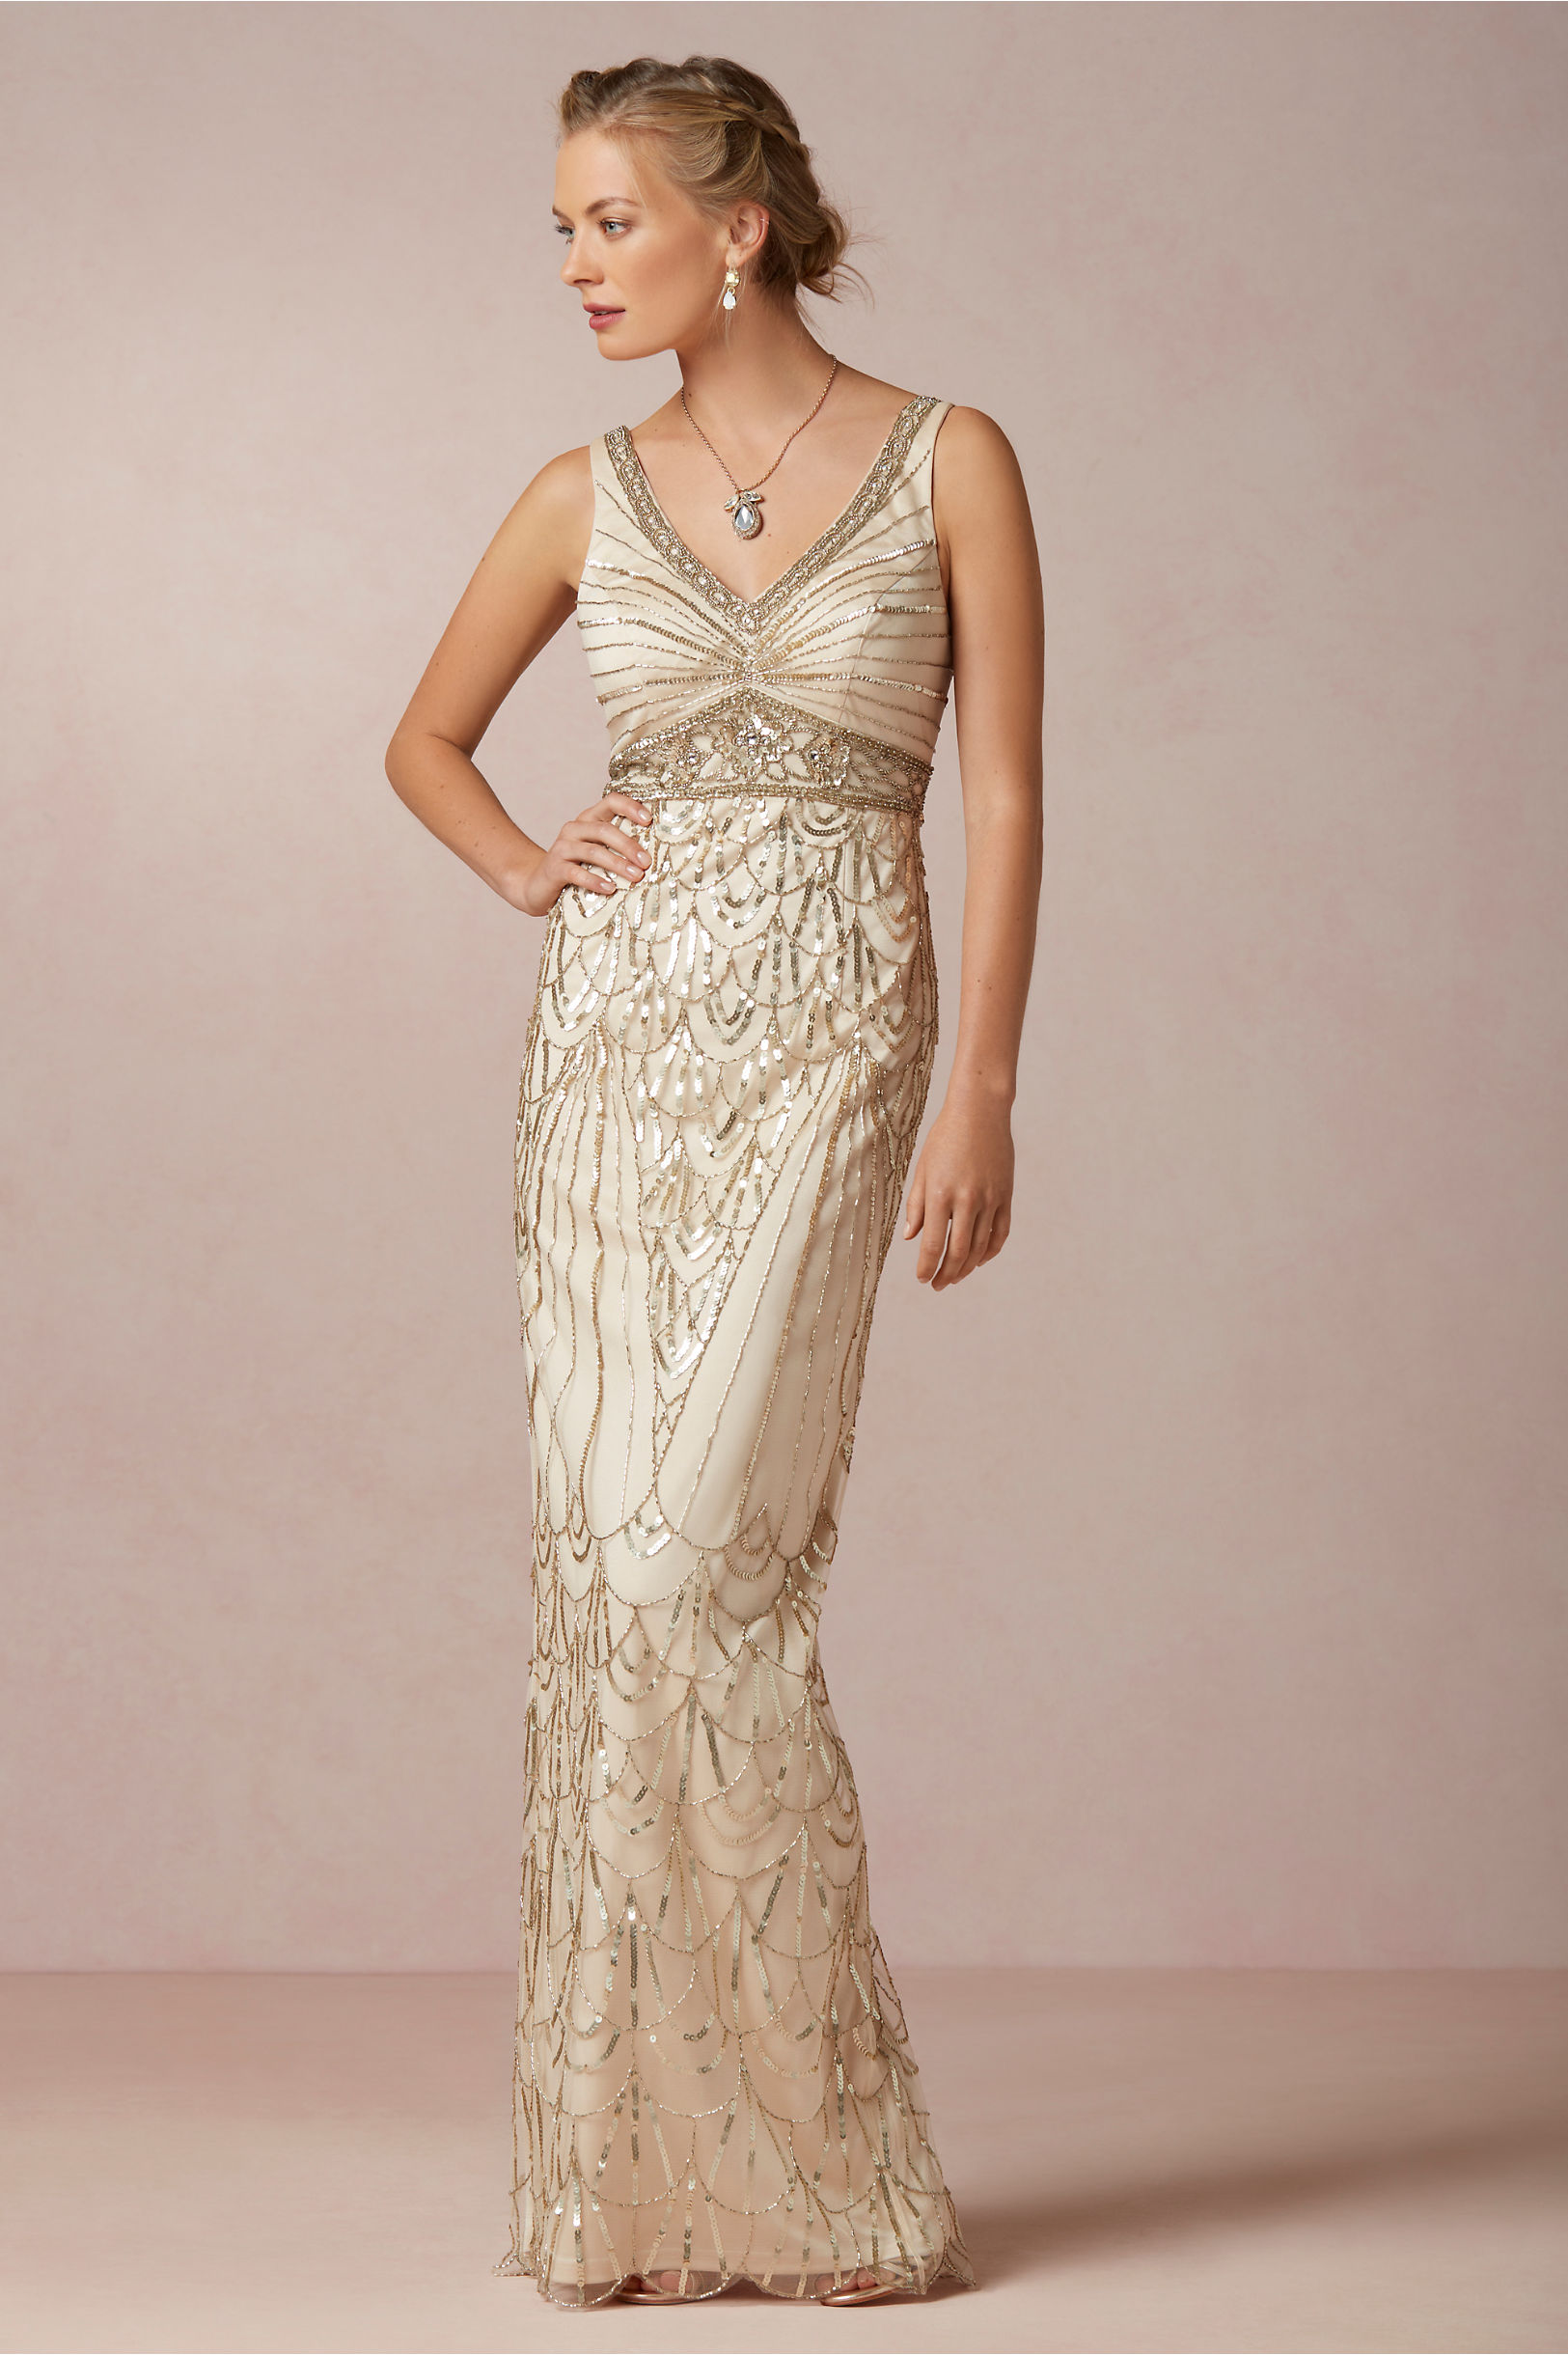 Gatsby Style Dresses for Mother of the Groom